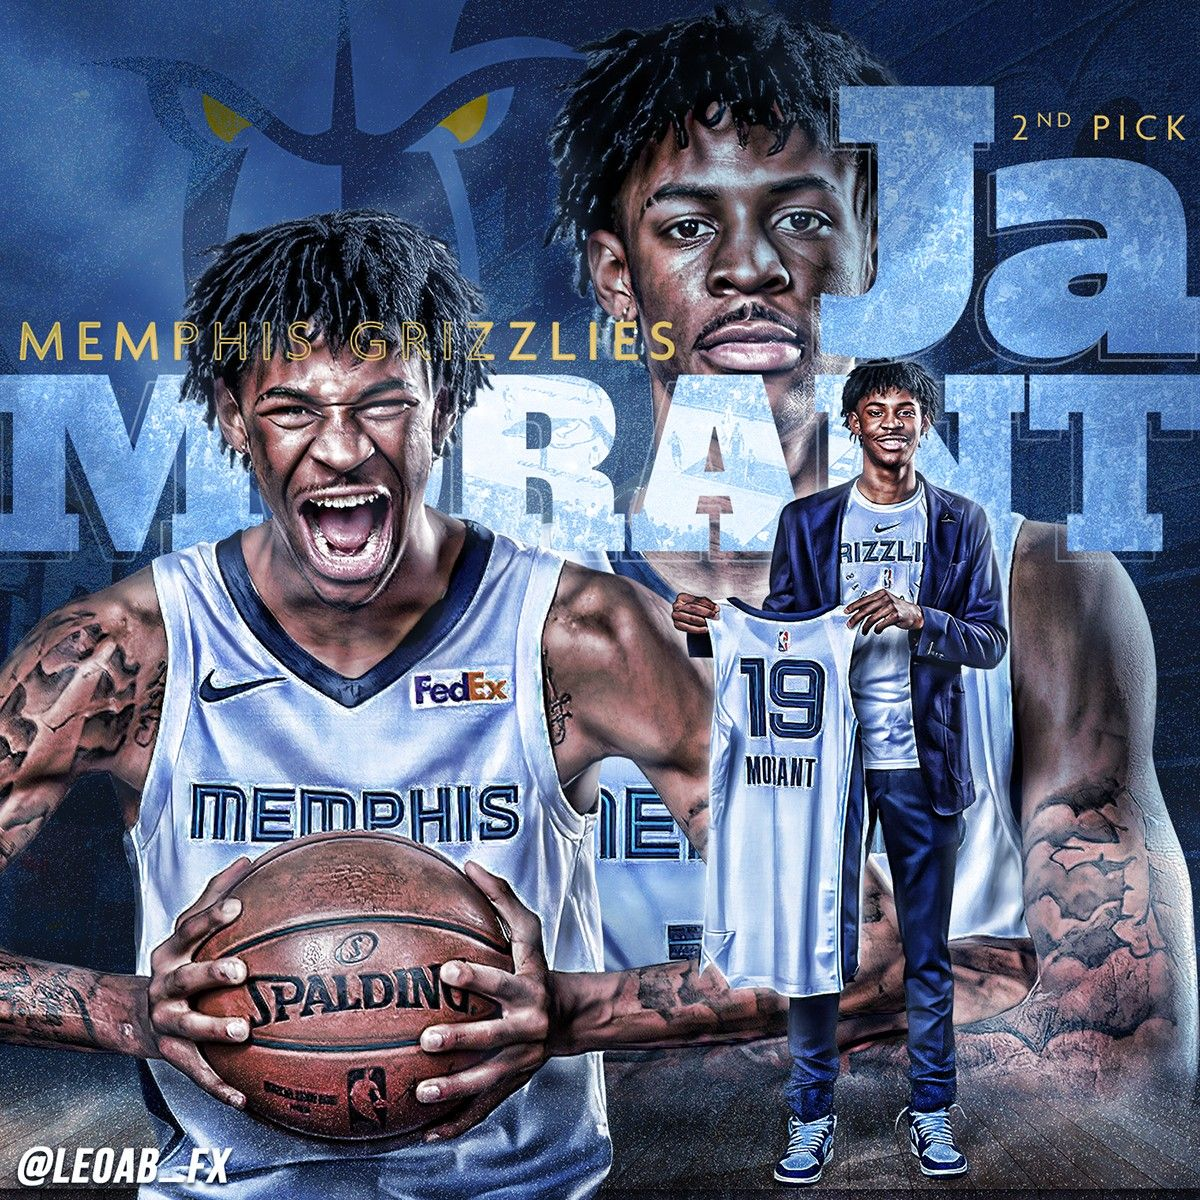 Pin by Cool Breeze on Ja Morant 12! Memphis grizzlies